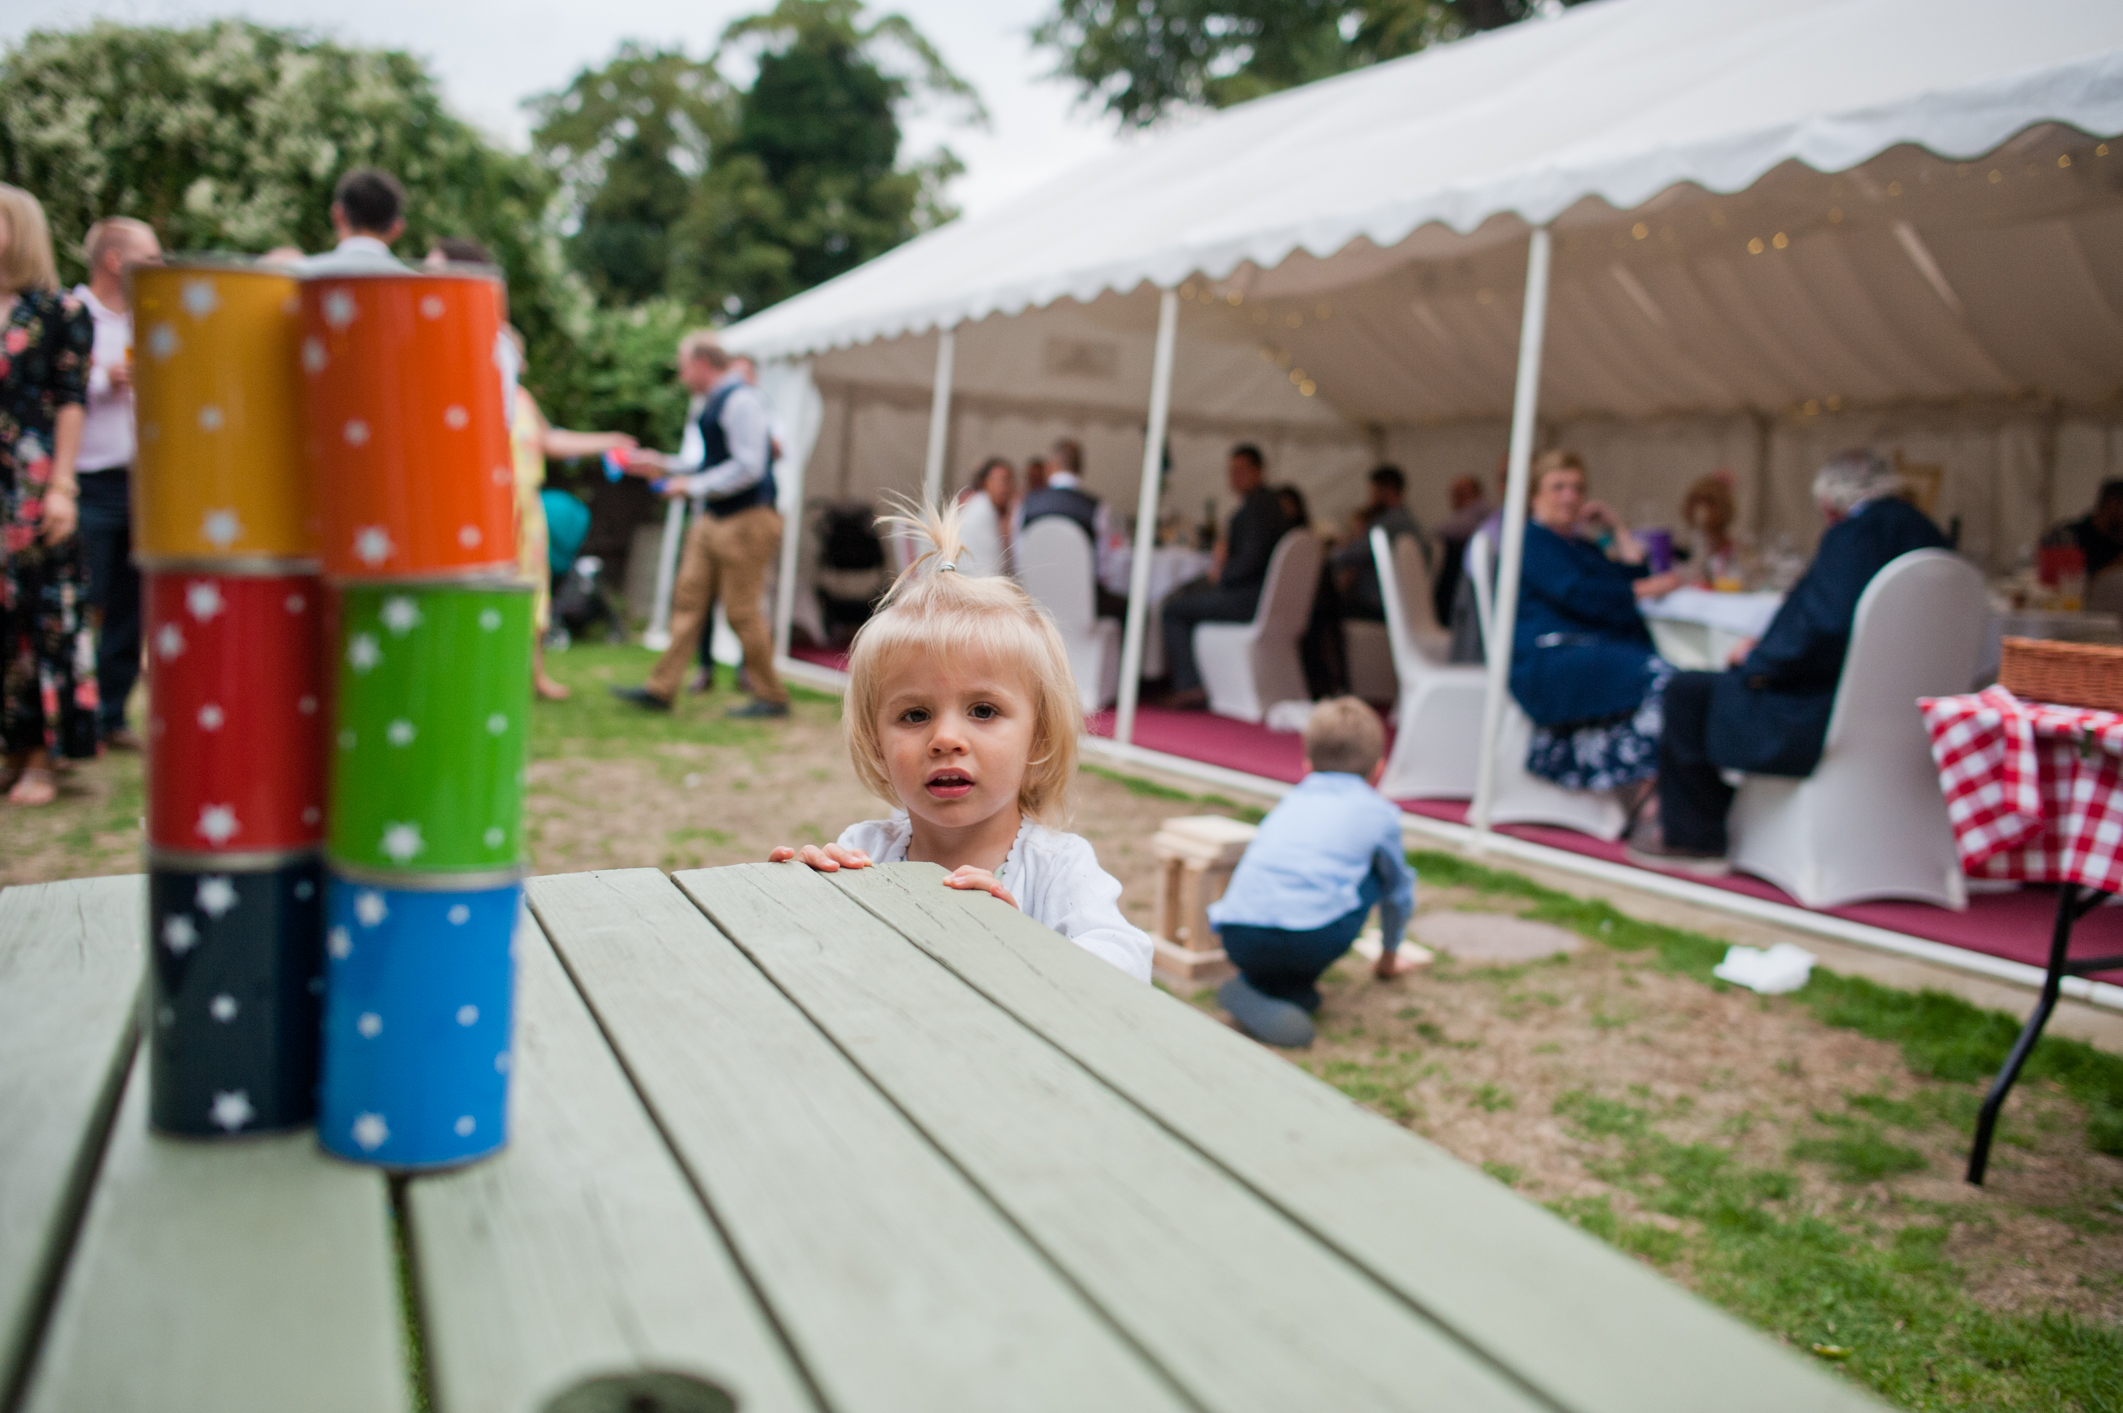 Garden games for weddings get people up and moving and having a good time. They go down very well with kids too.